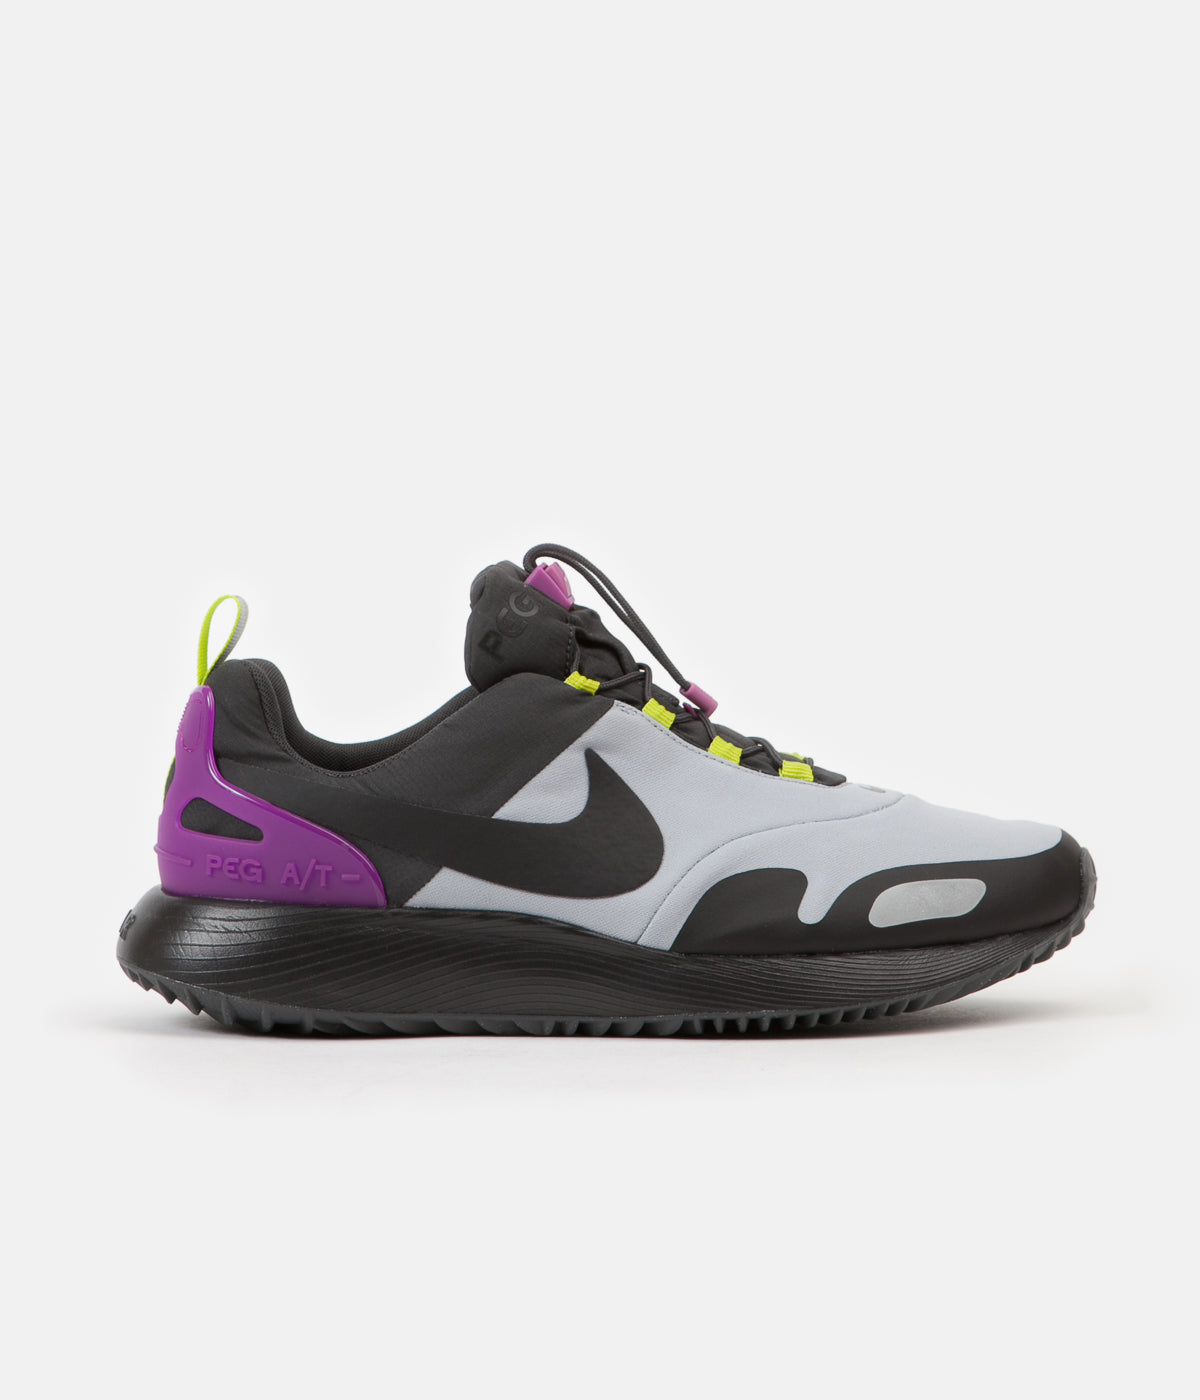 nike air pegasus a t shoes anthracite black wolf grey